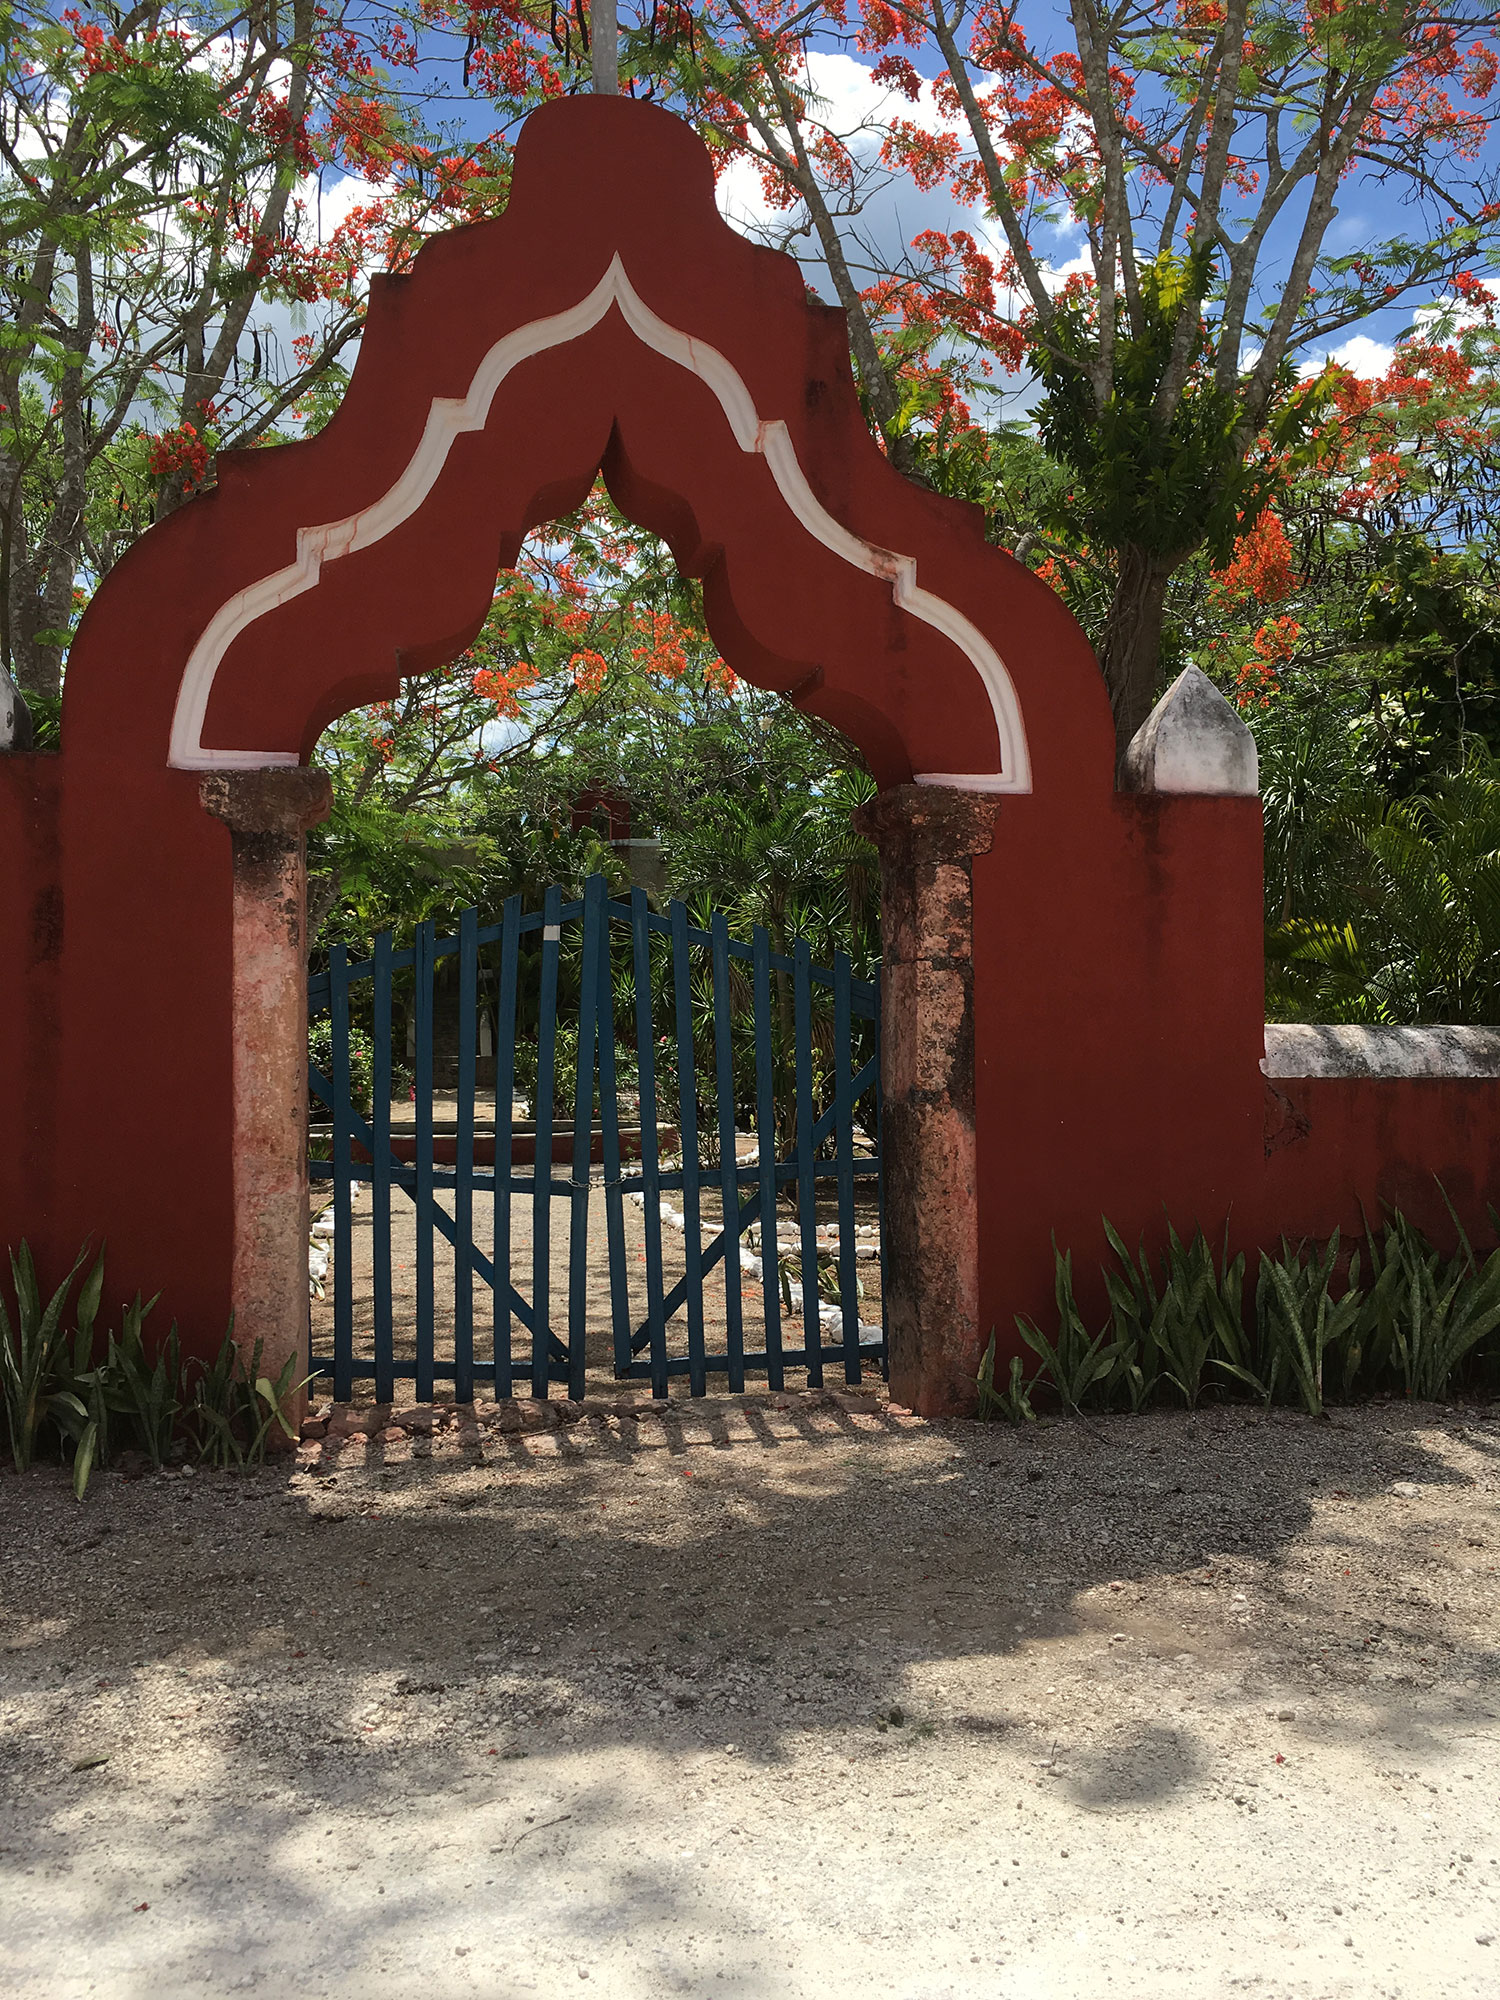 The entry gate to the Hacienda San Antonio Dzina, south of the cenote.